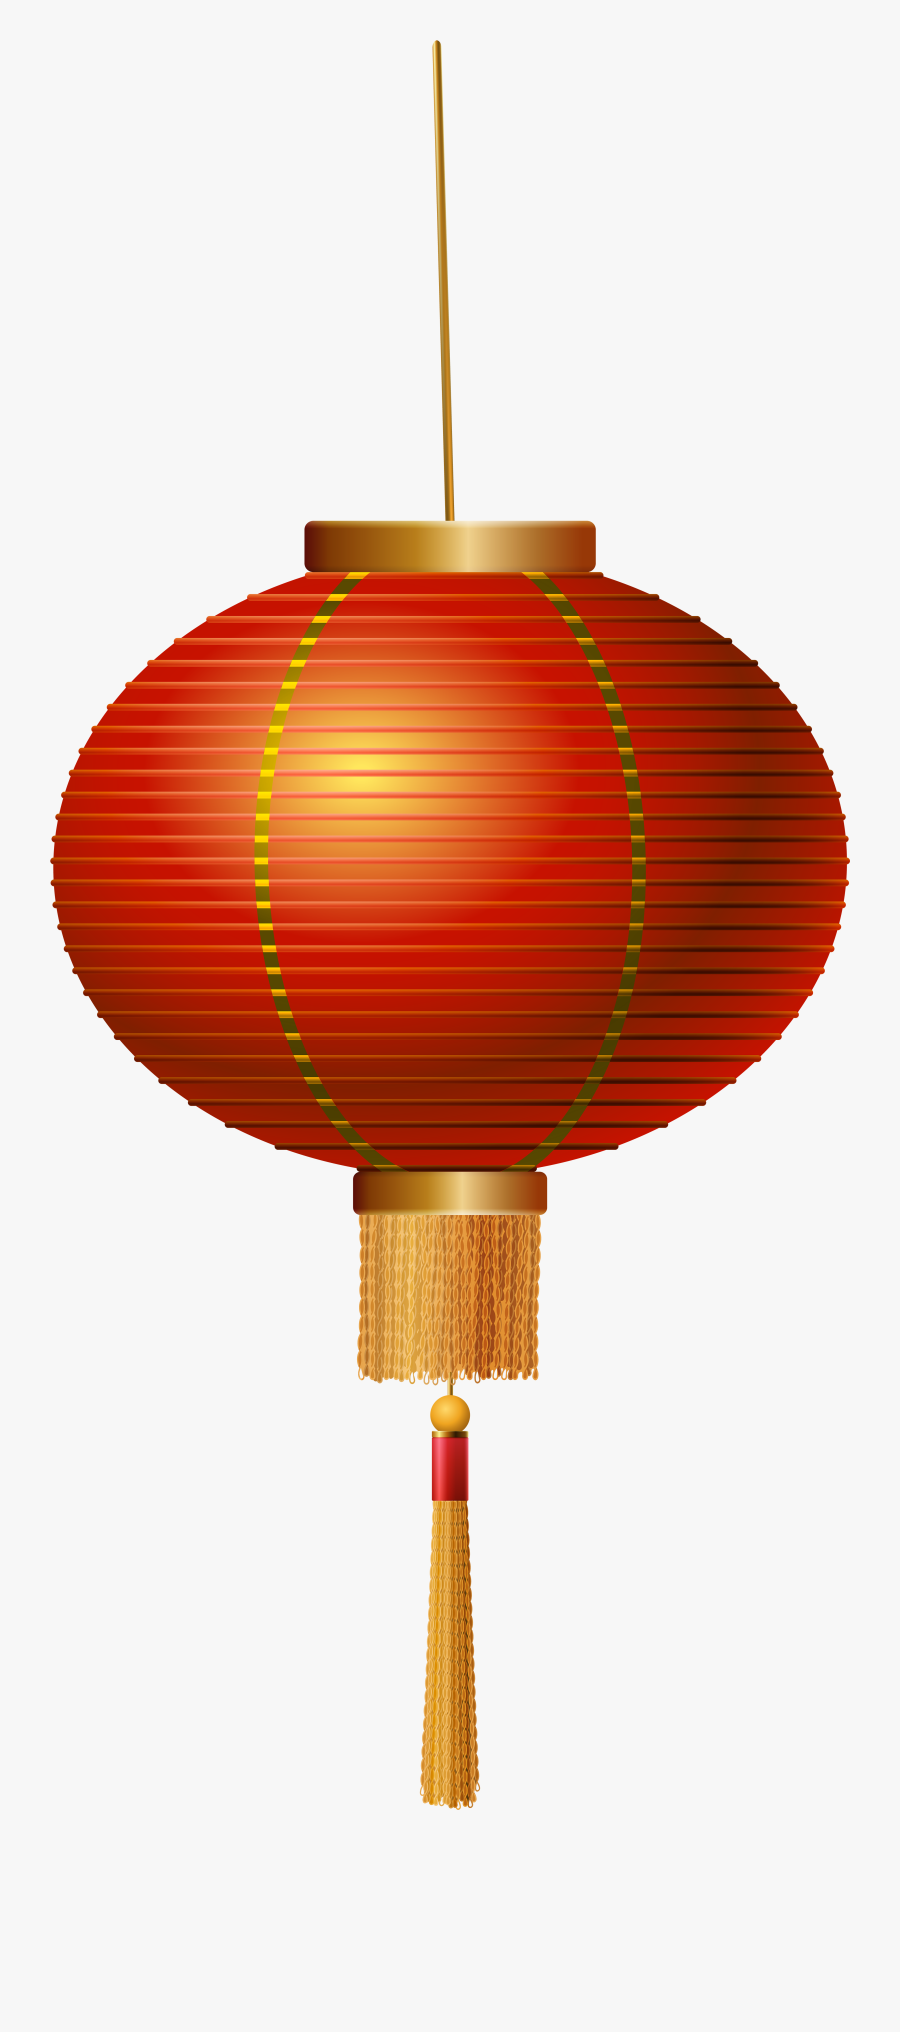 Red Chinese Lantern Png Clip Art - Chinese Lantern Transparent Background, Transparent Clipart